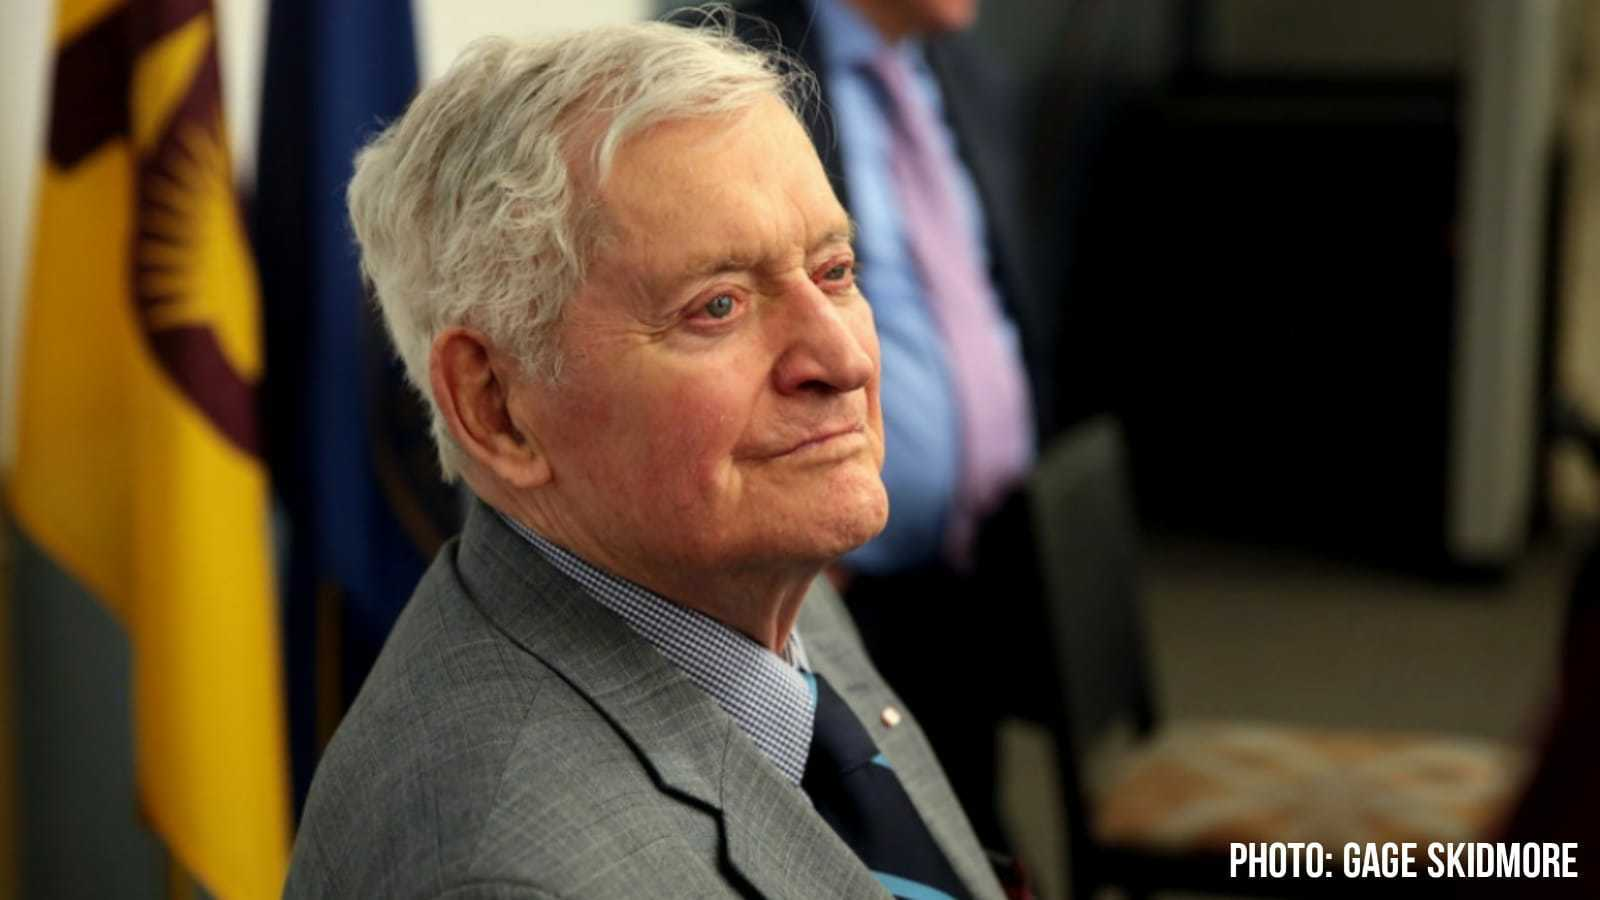 BREAKING: Former Prime Minister John Turner Has Died